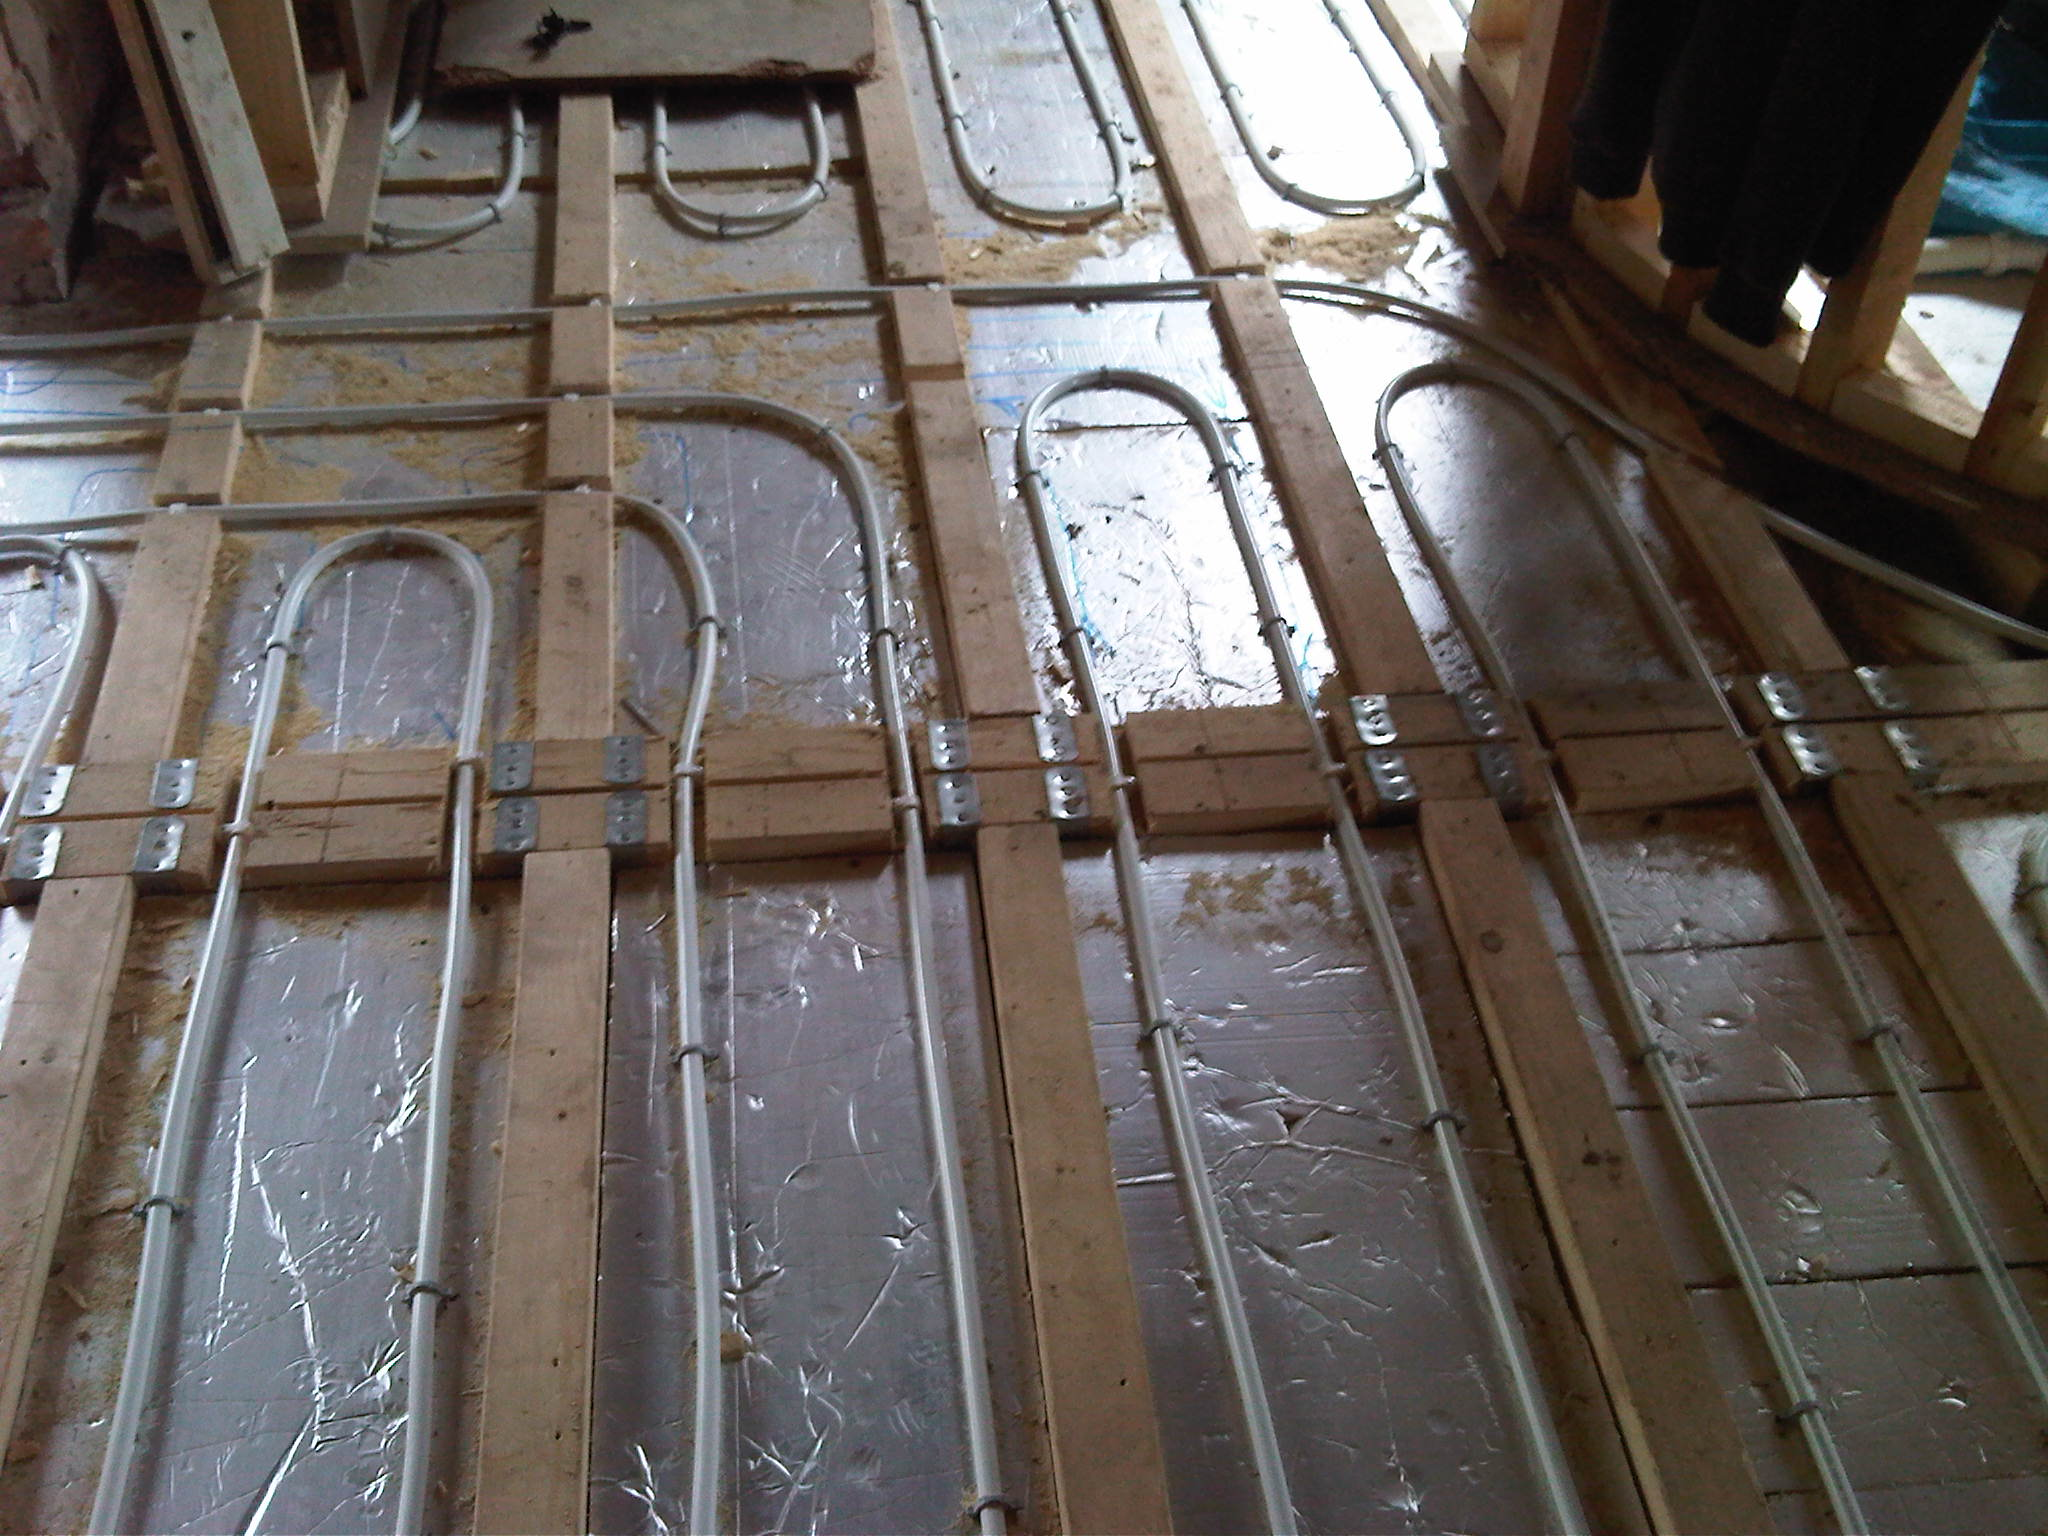 Uponor underfloor heating pipes laid within joists before a biscuit screed la. & Index of /bin/gallery/heating/